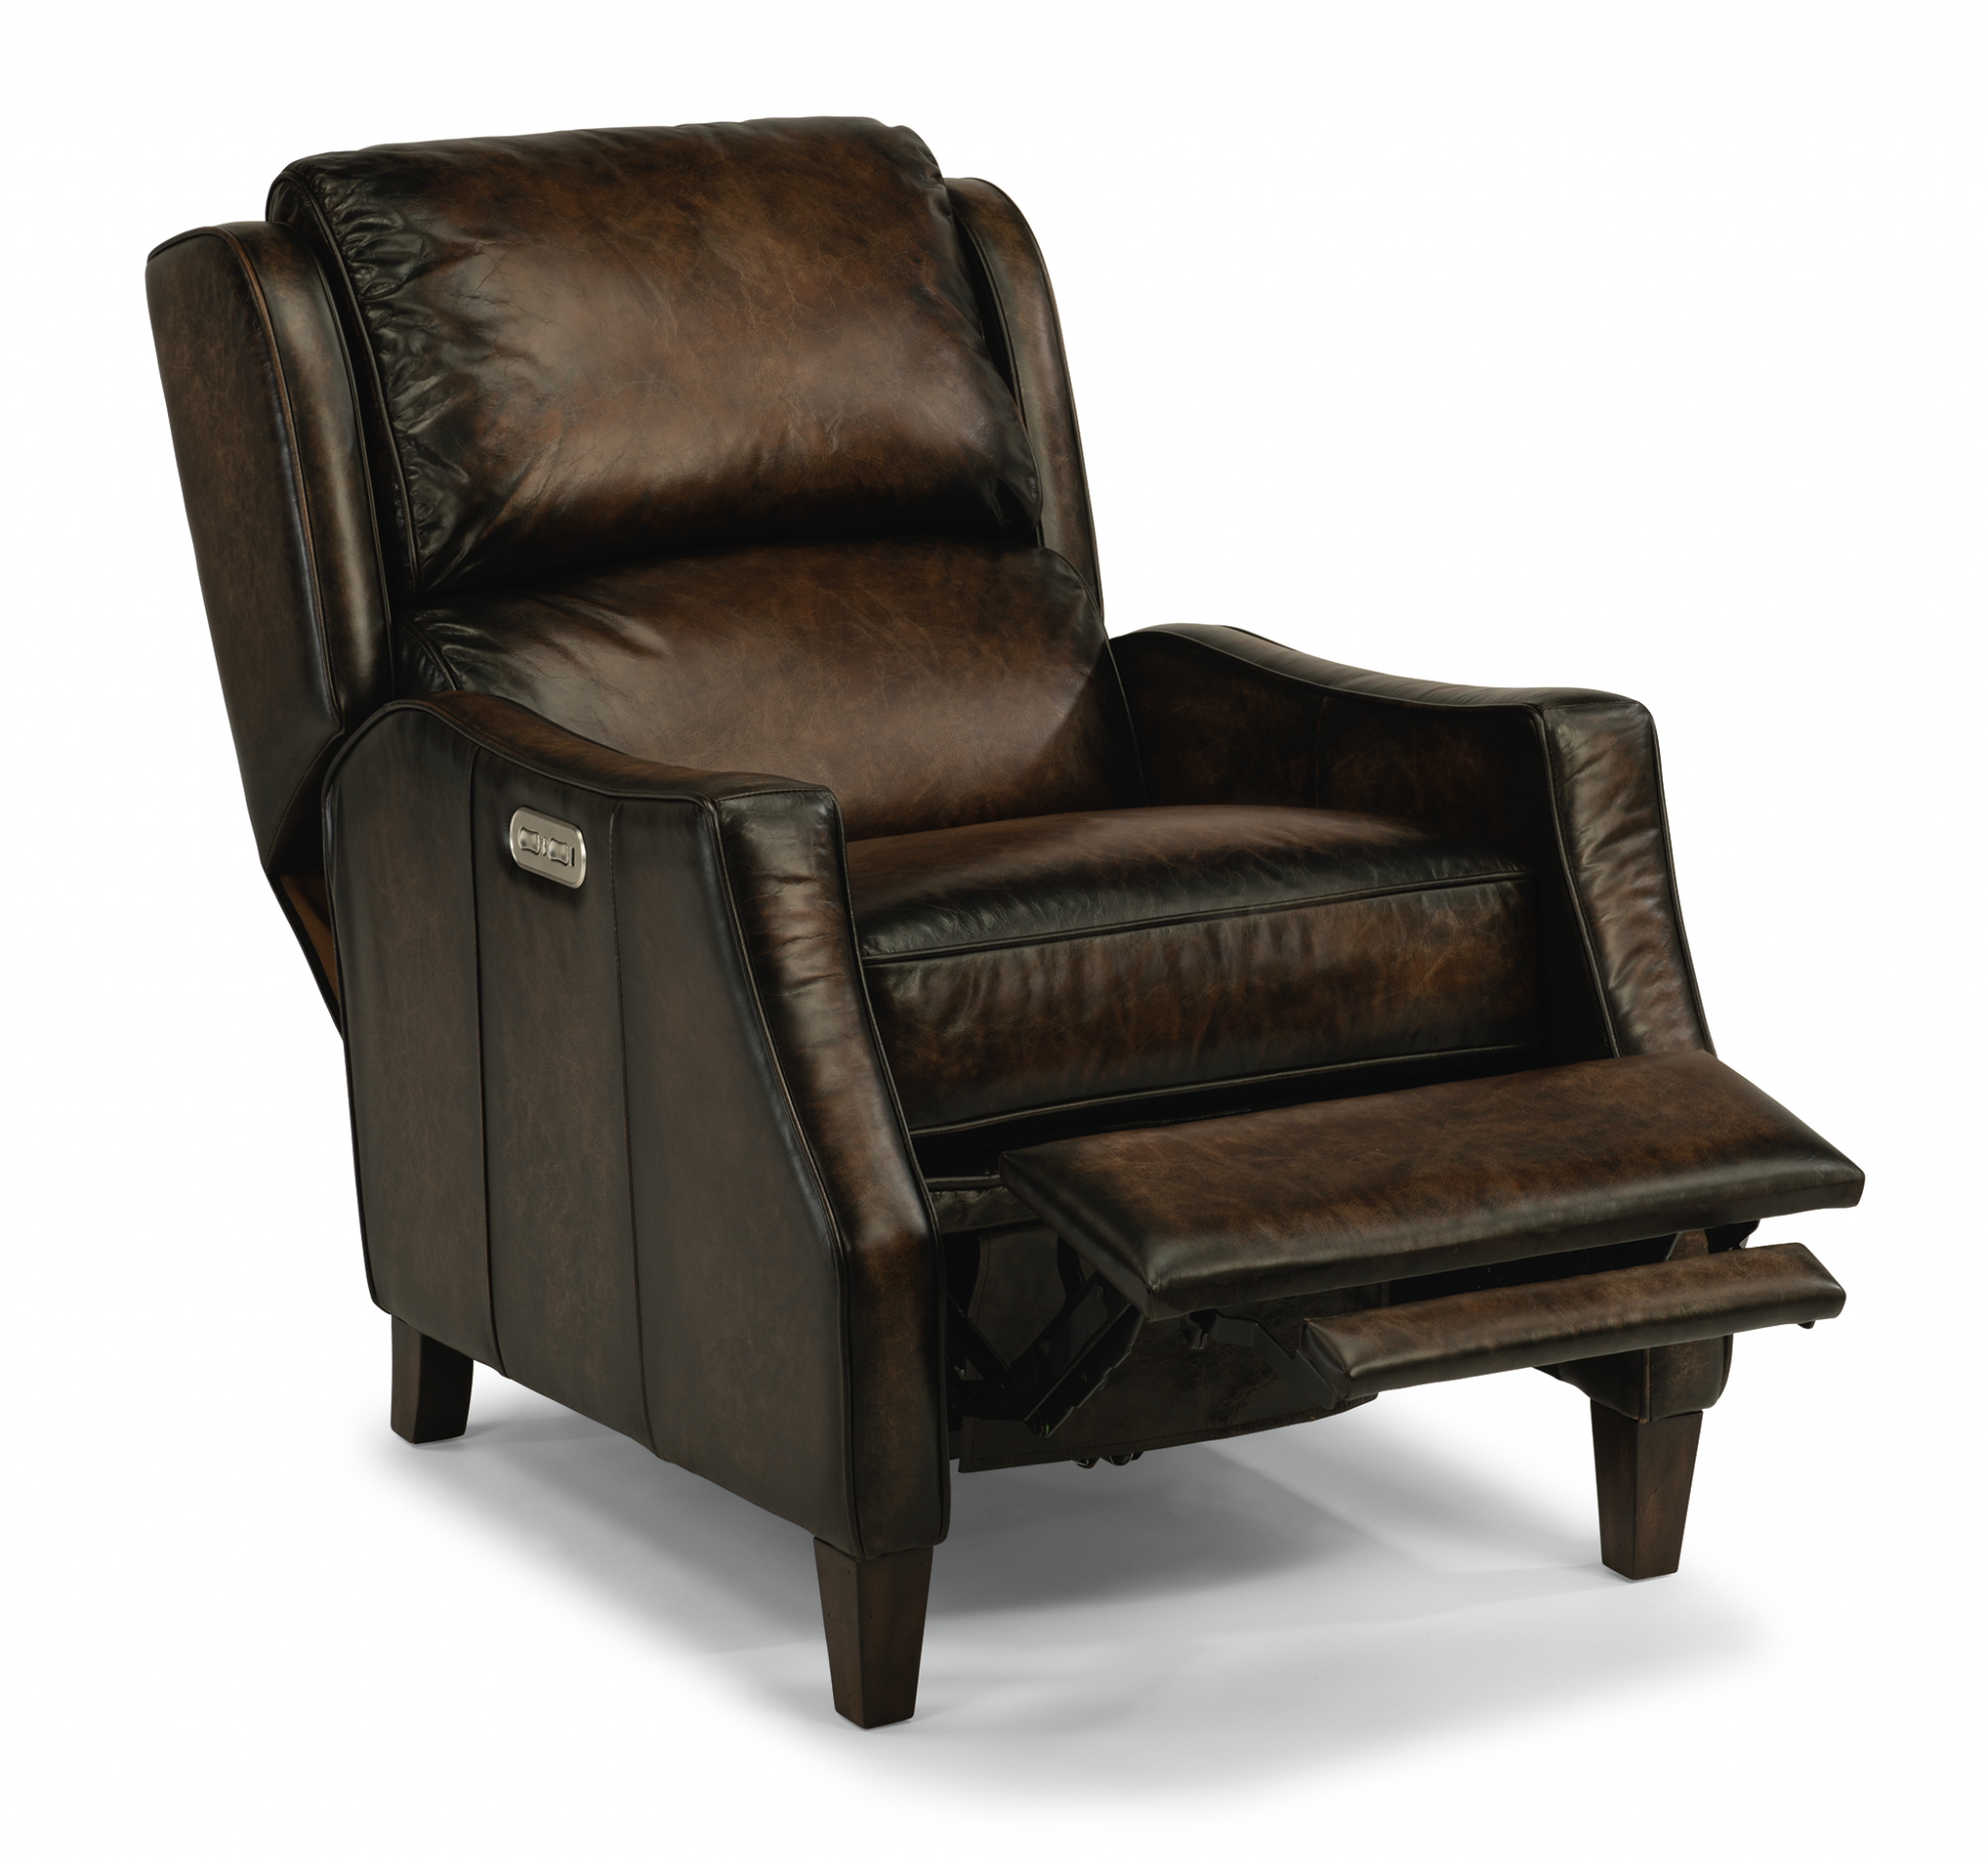 Leather Power High-Leg Recliner with Power Headrest  sc 1 st  Flexsteel : electric recliners leather - islam-shia.org